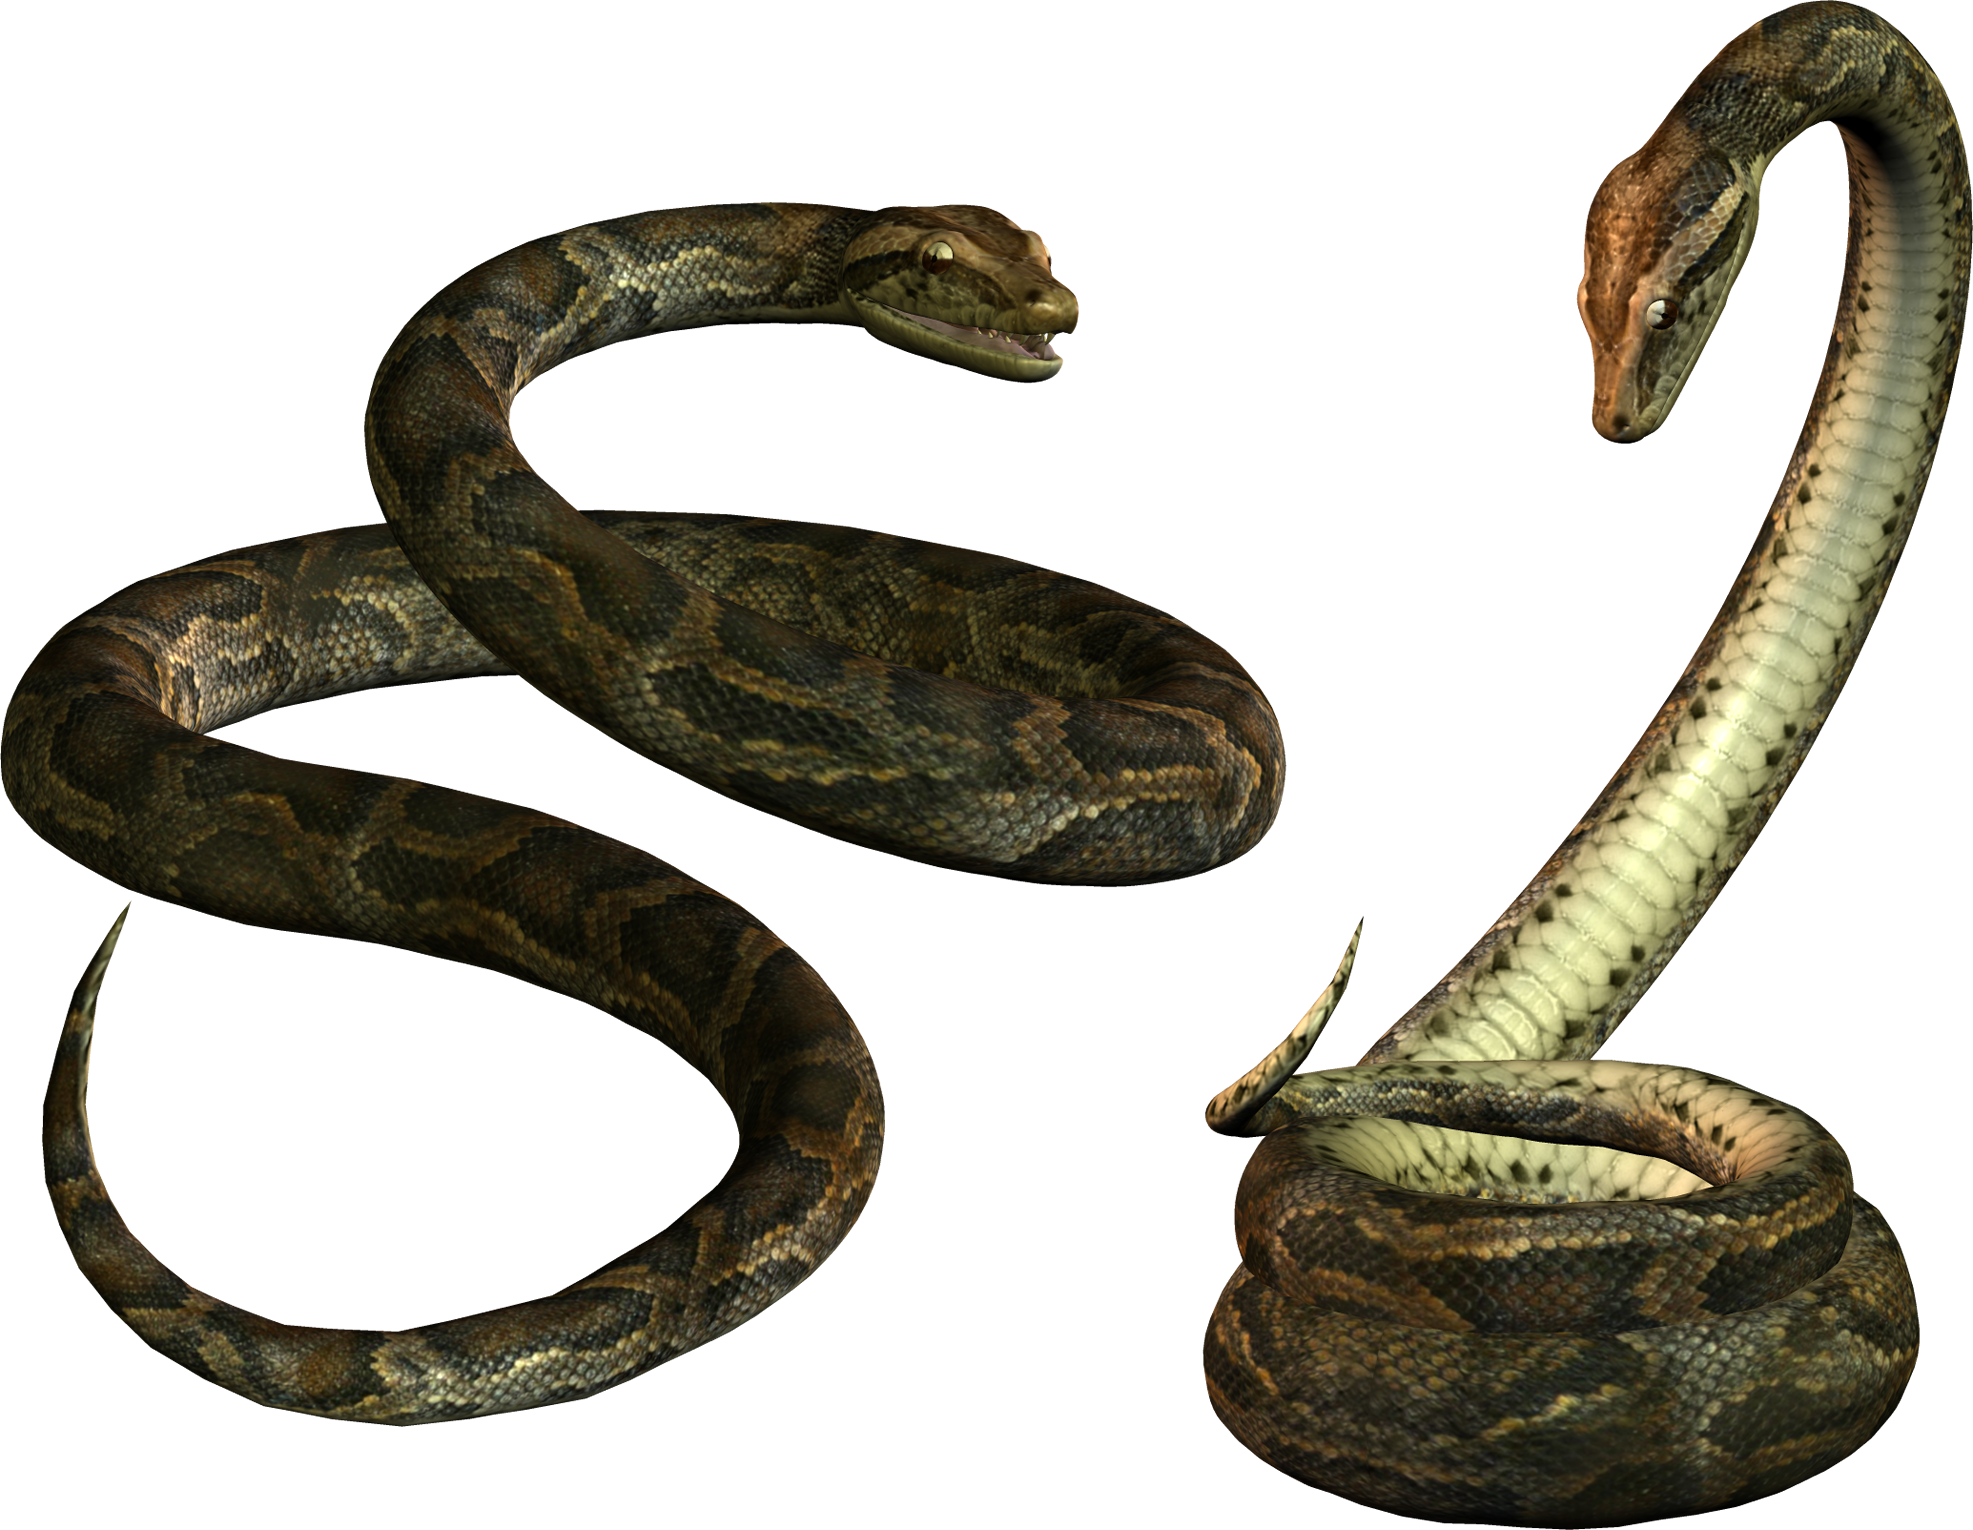 Snake PNG Image Picture Download Free - Python Snake PNG